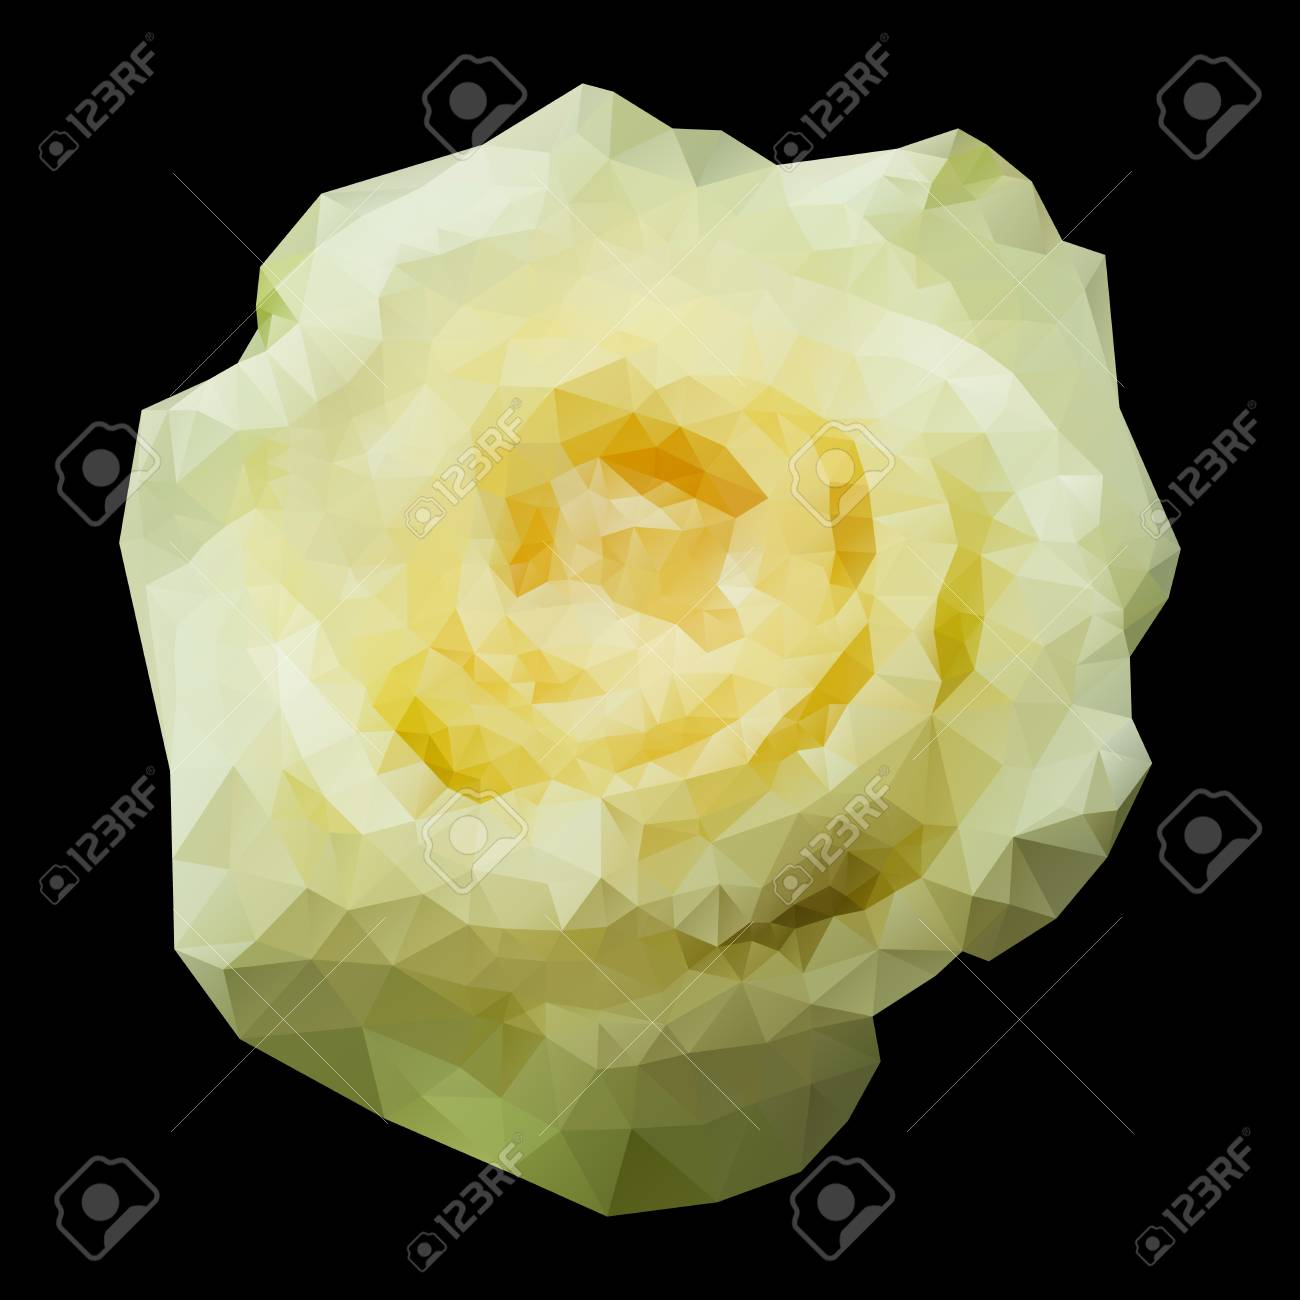 Abstract geometric polygonal white rose for your design. Stock Vector - 23399933